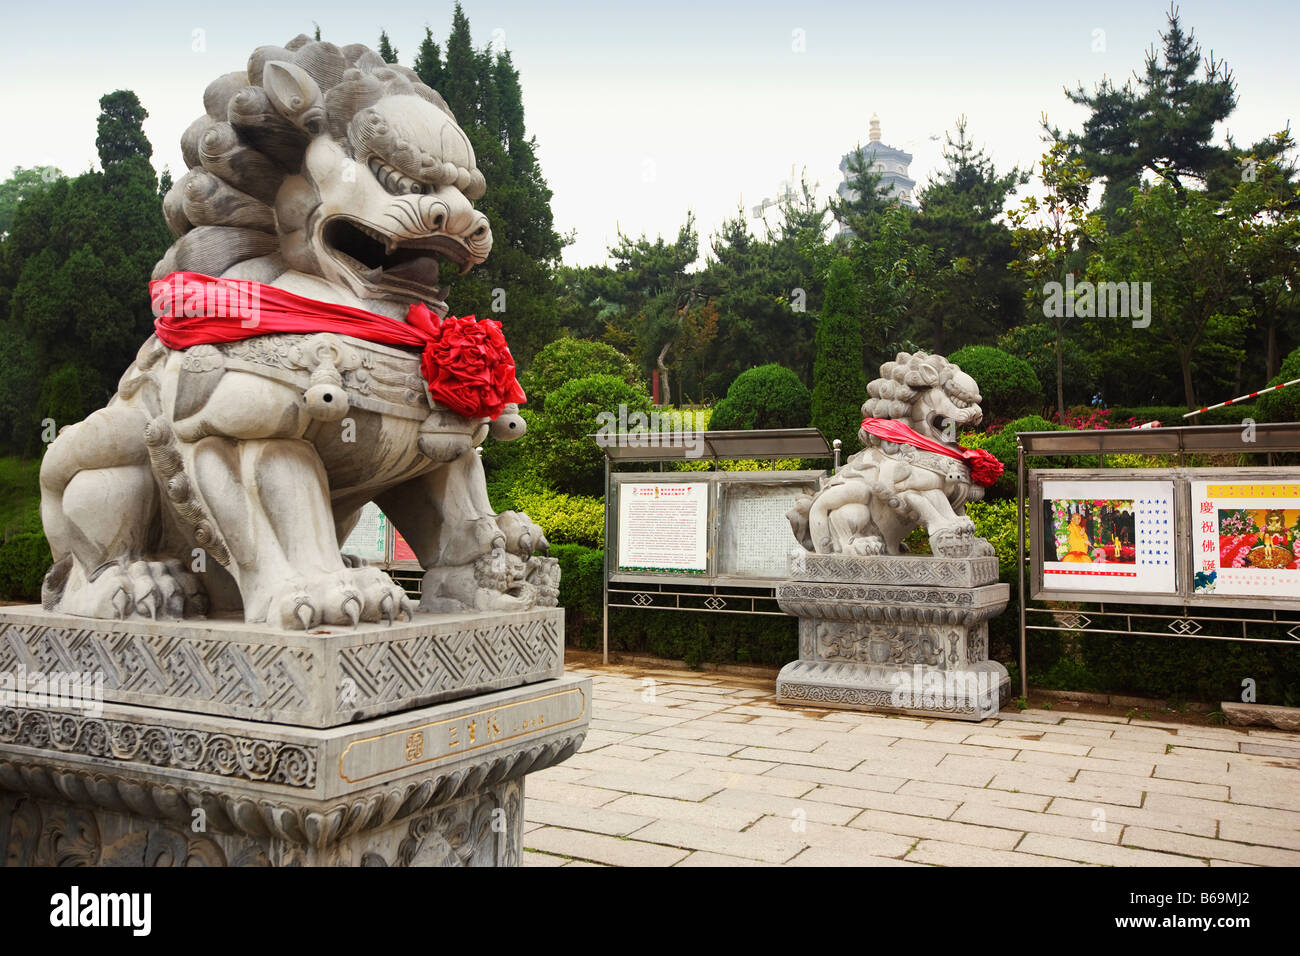 Lion statues in a temple, Zhanshan Temple, Qingdao, Shandong Province, China - Stock Image